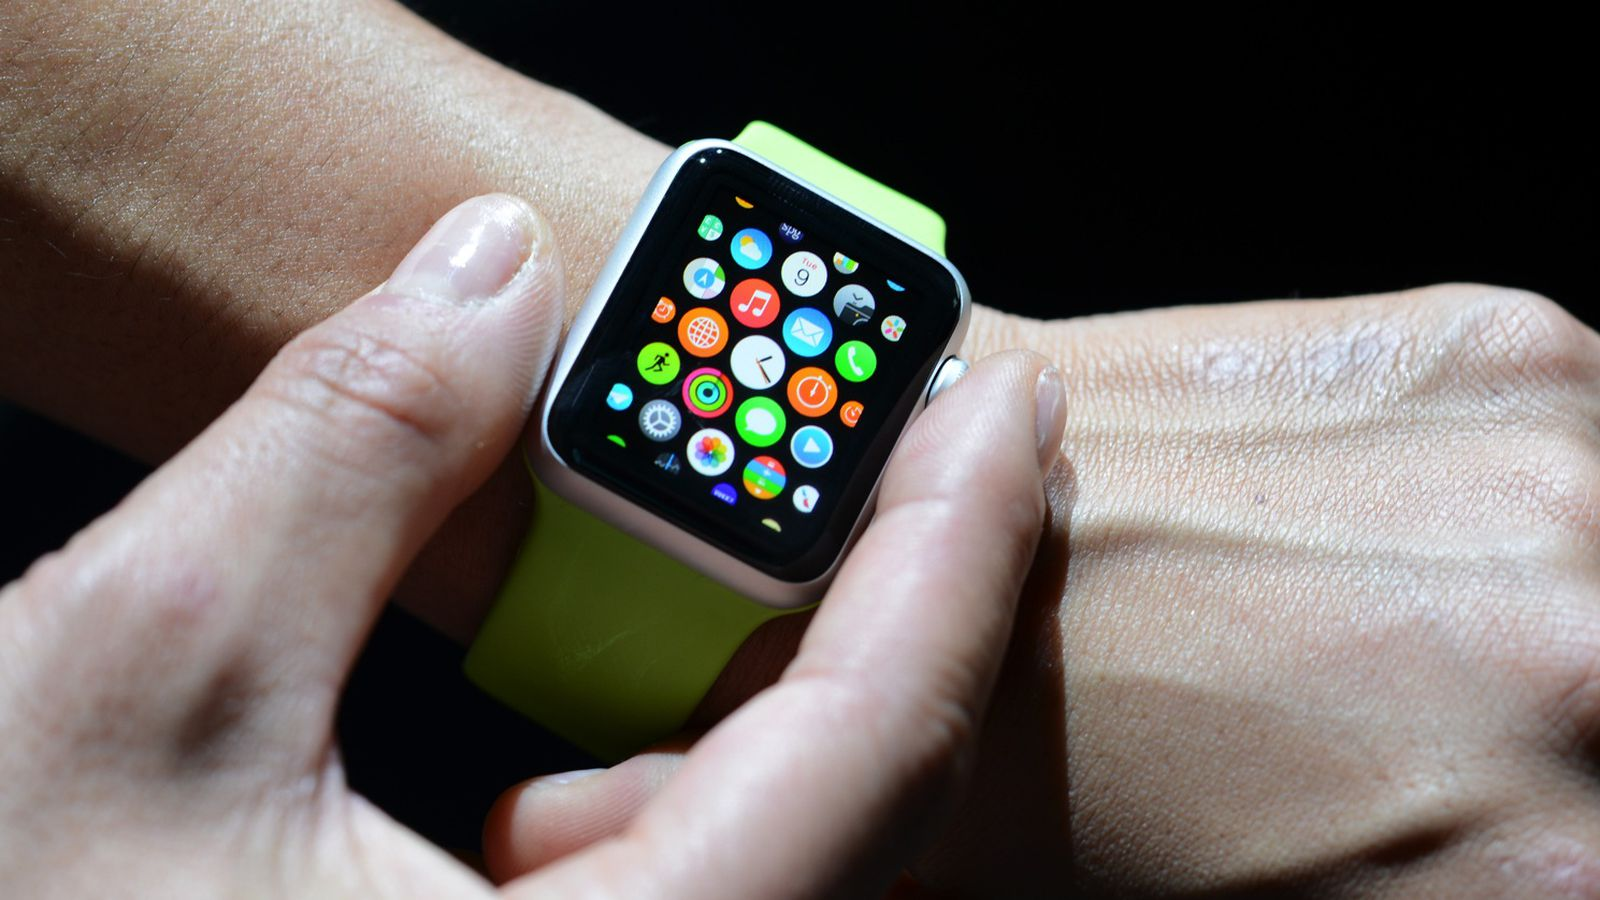 There are now more than 8,500 Apple Watch apps